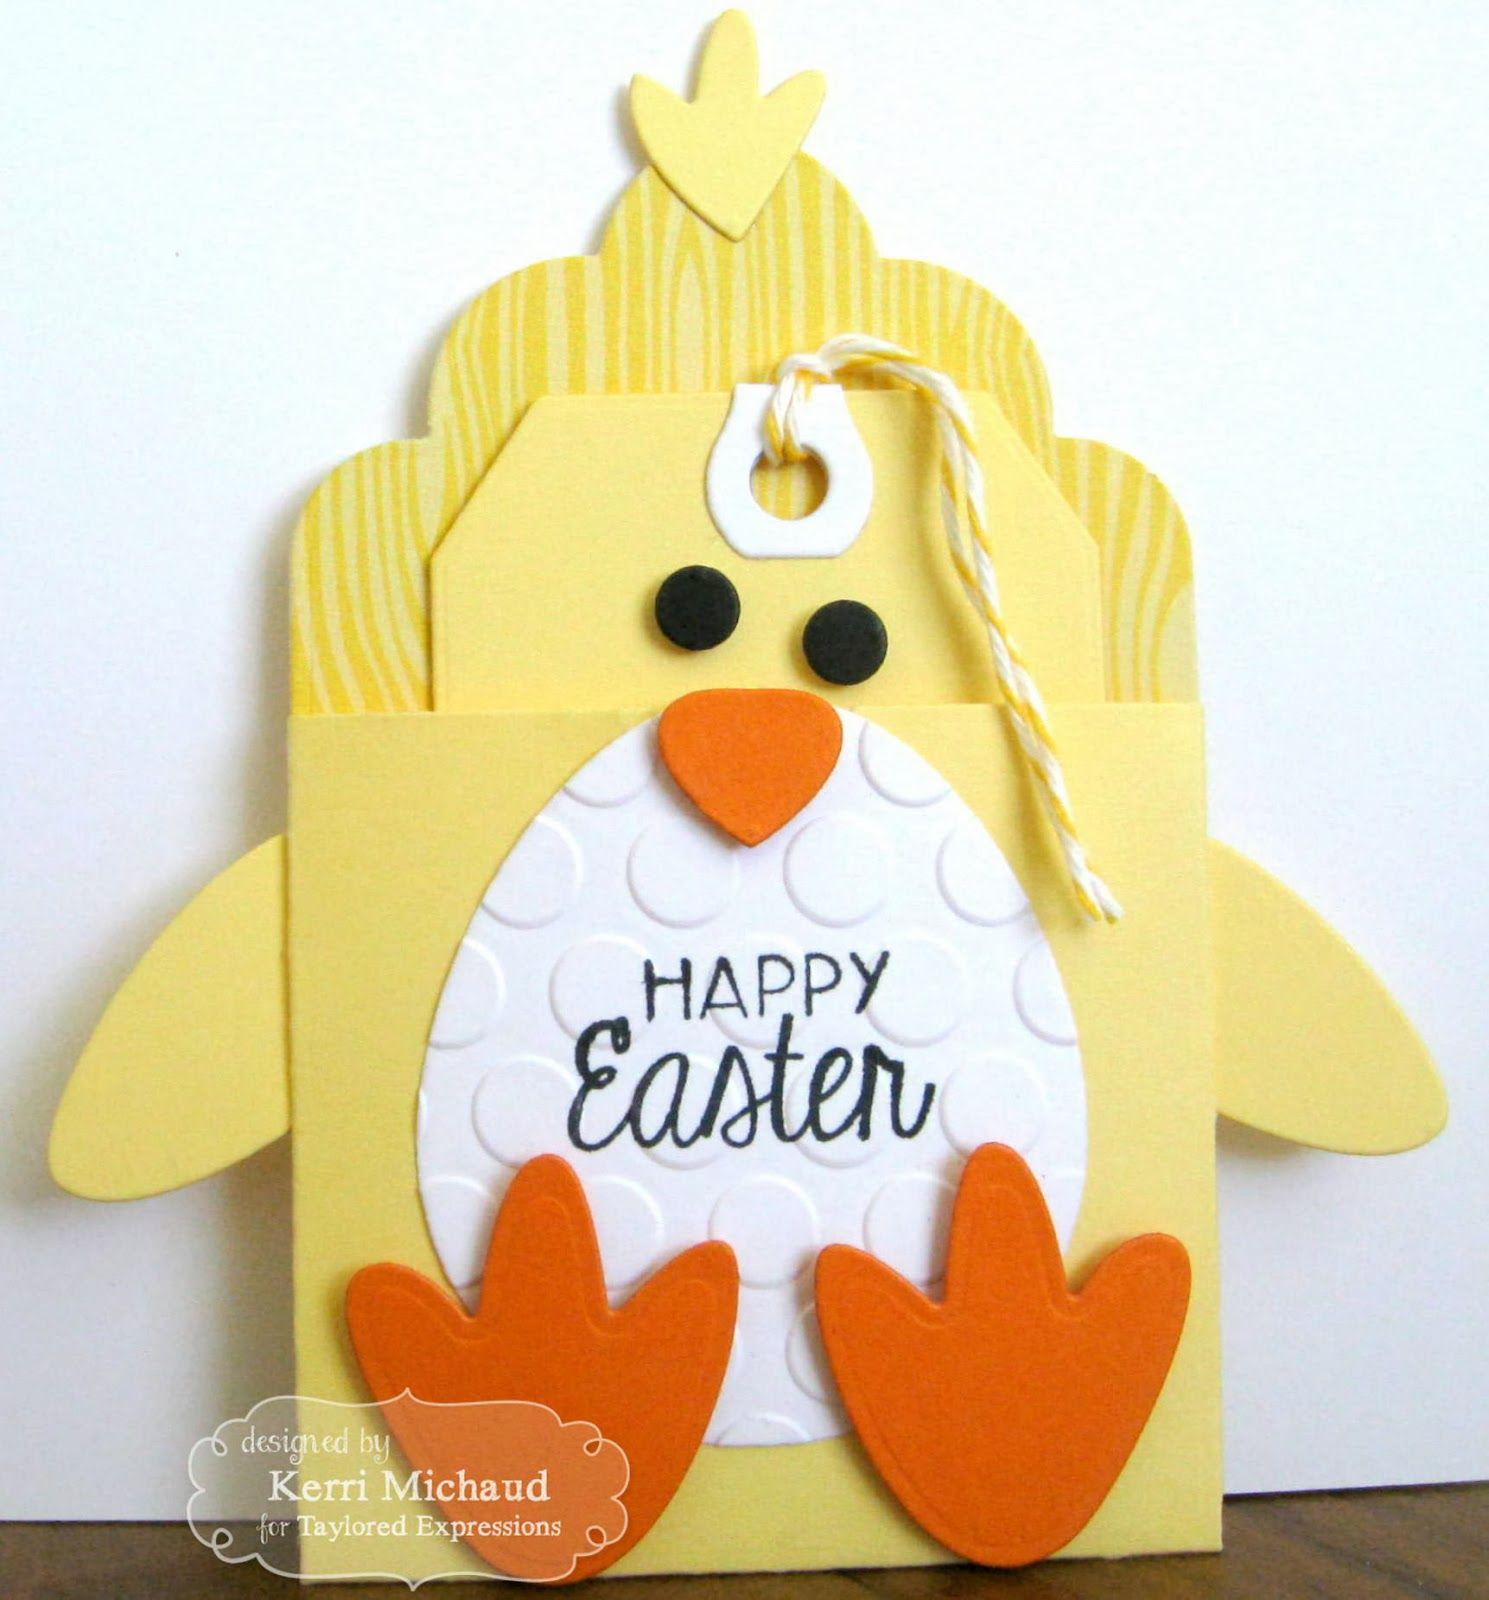 Happy easter gift card from taylored expressions dont forget happy easter gift card from taylored expressions dont forget to use removable negle Choice Image